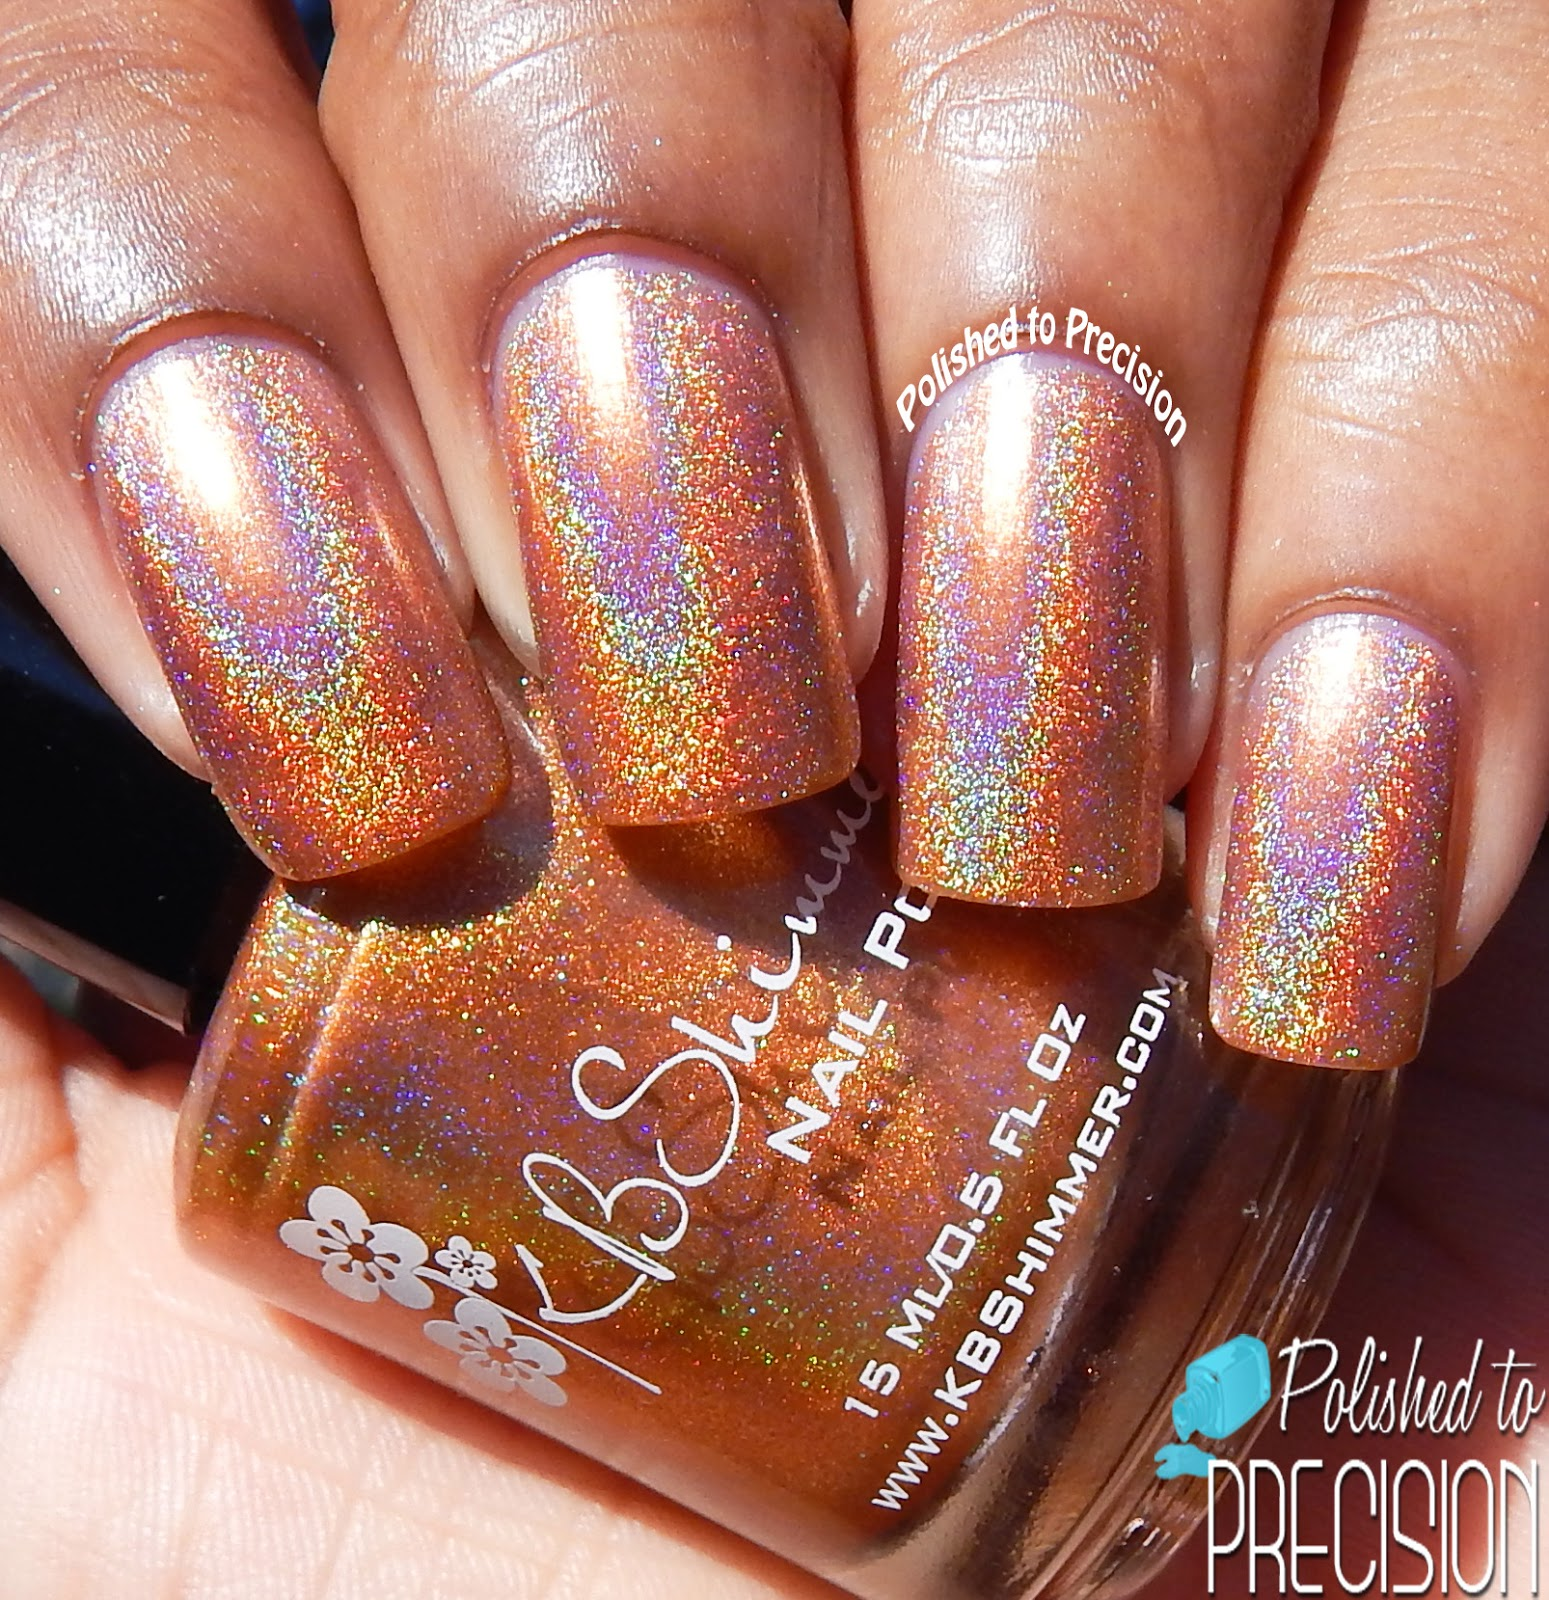 KBShimmer Run! It's the Coppers!